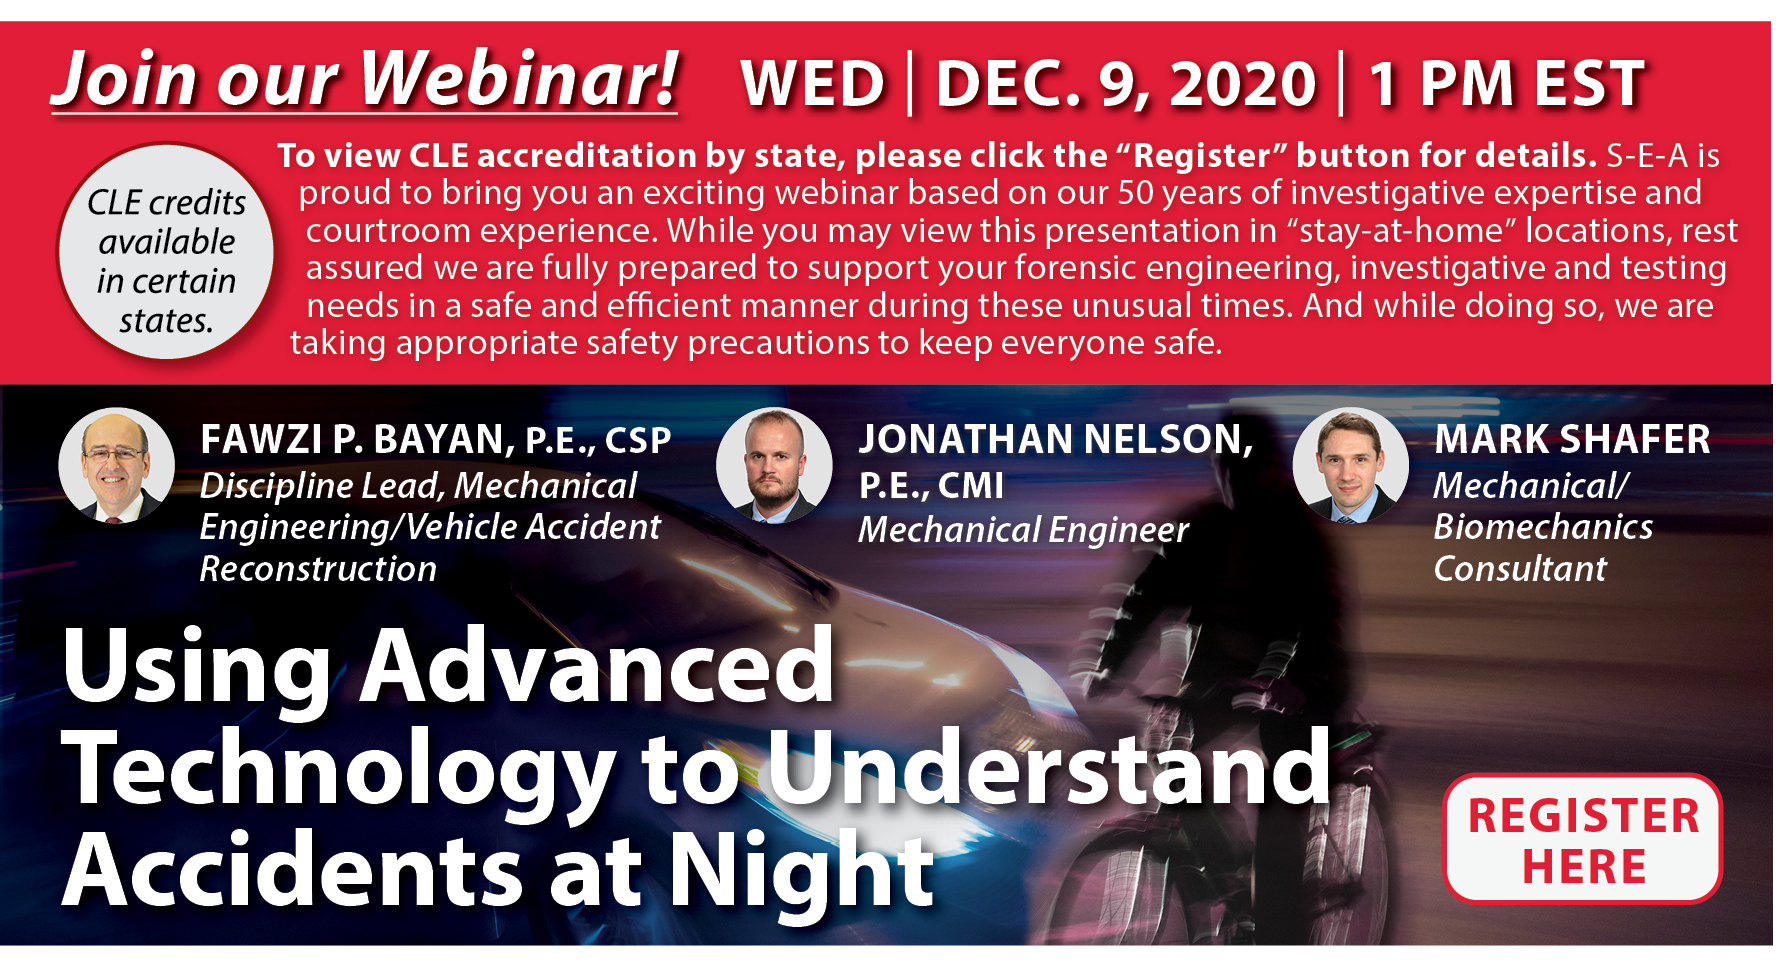 Join us for a Webinar on Using Advanced Technology to Understand Accidents at Night